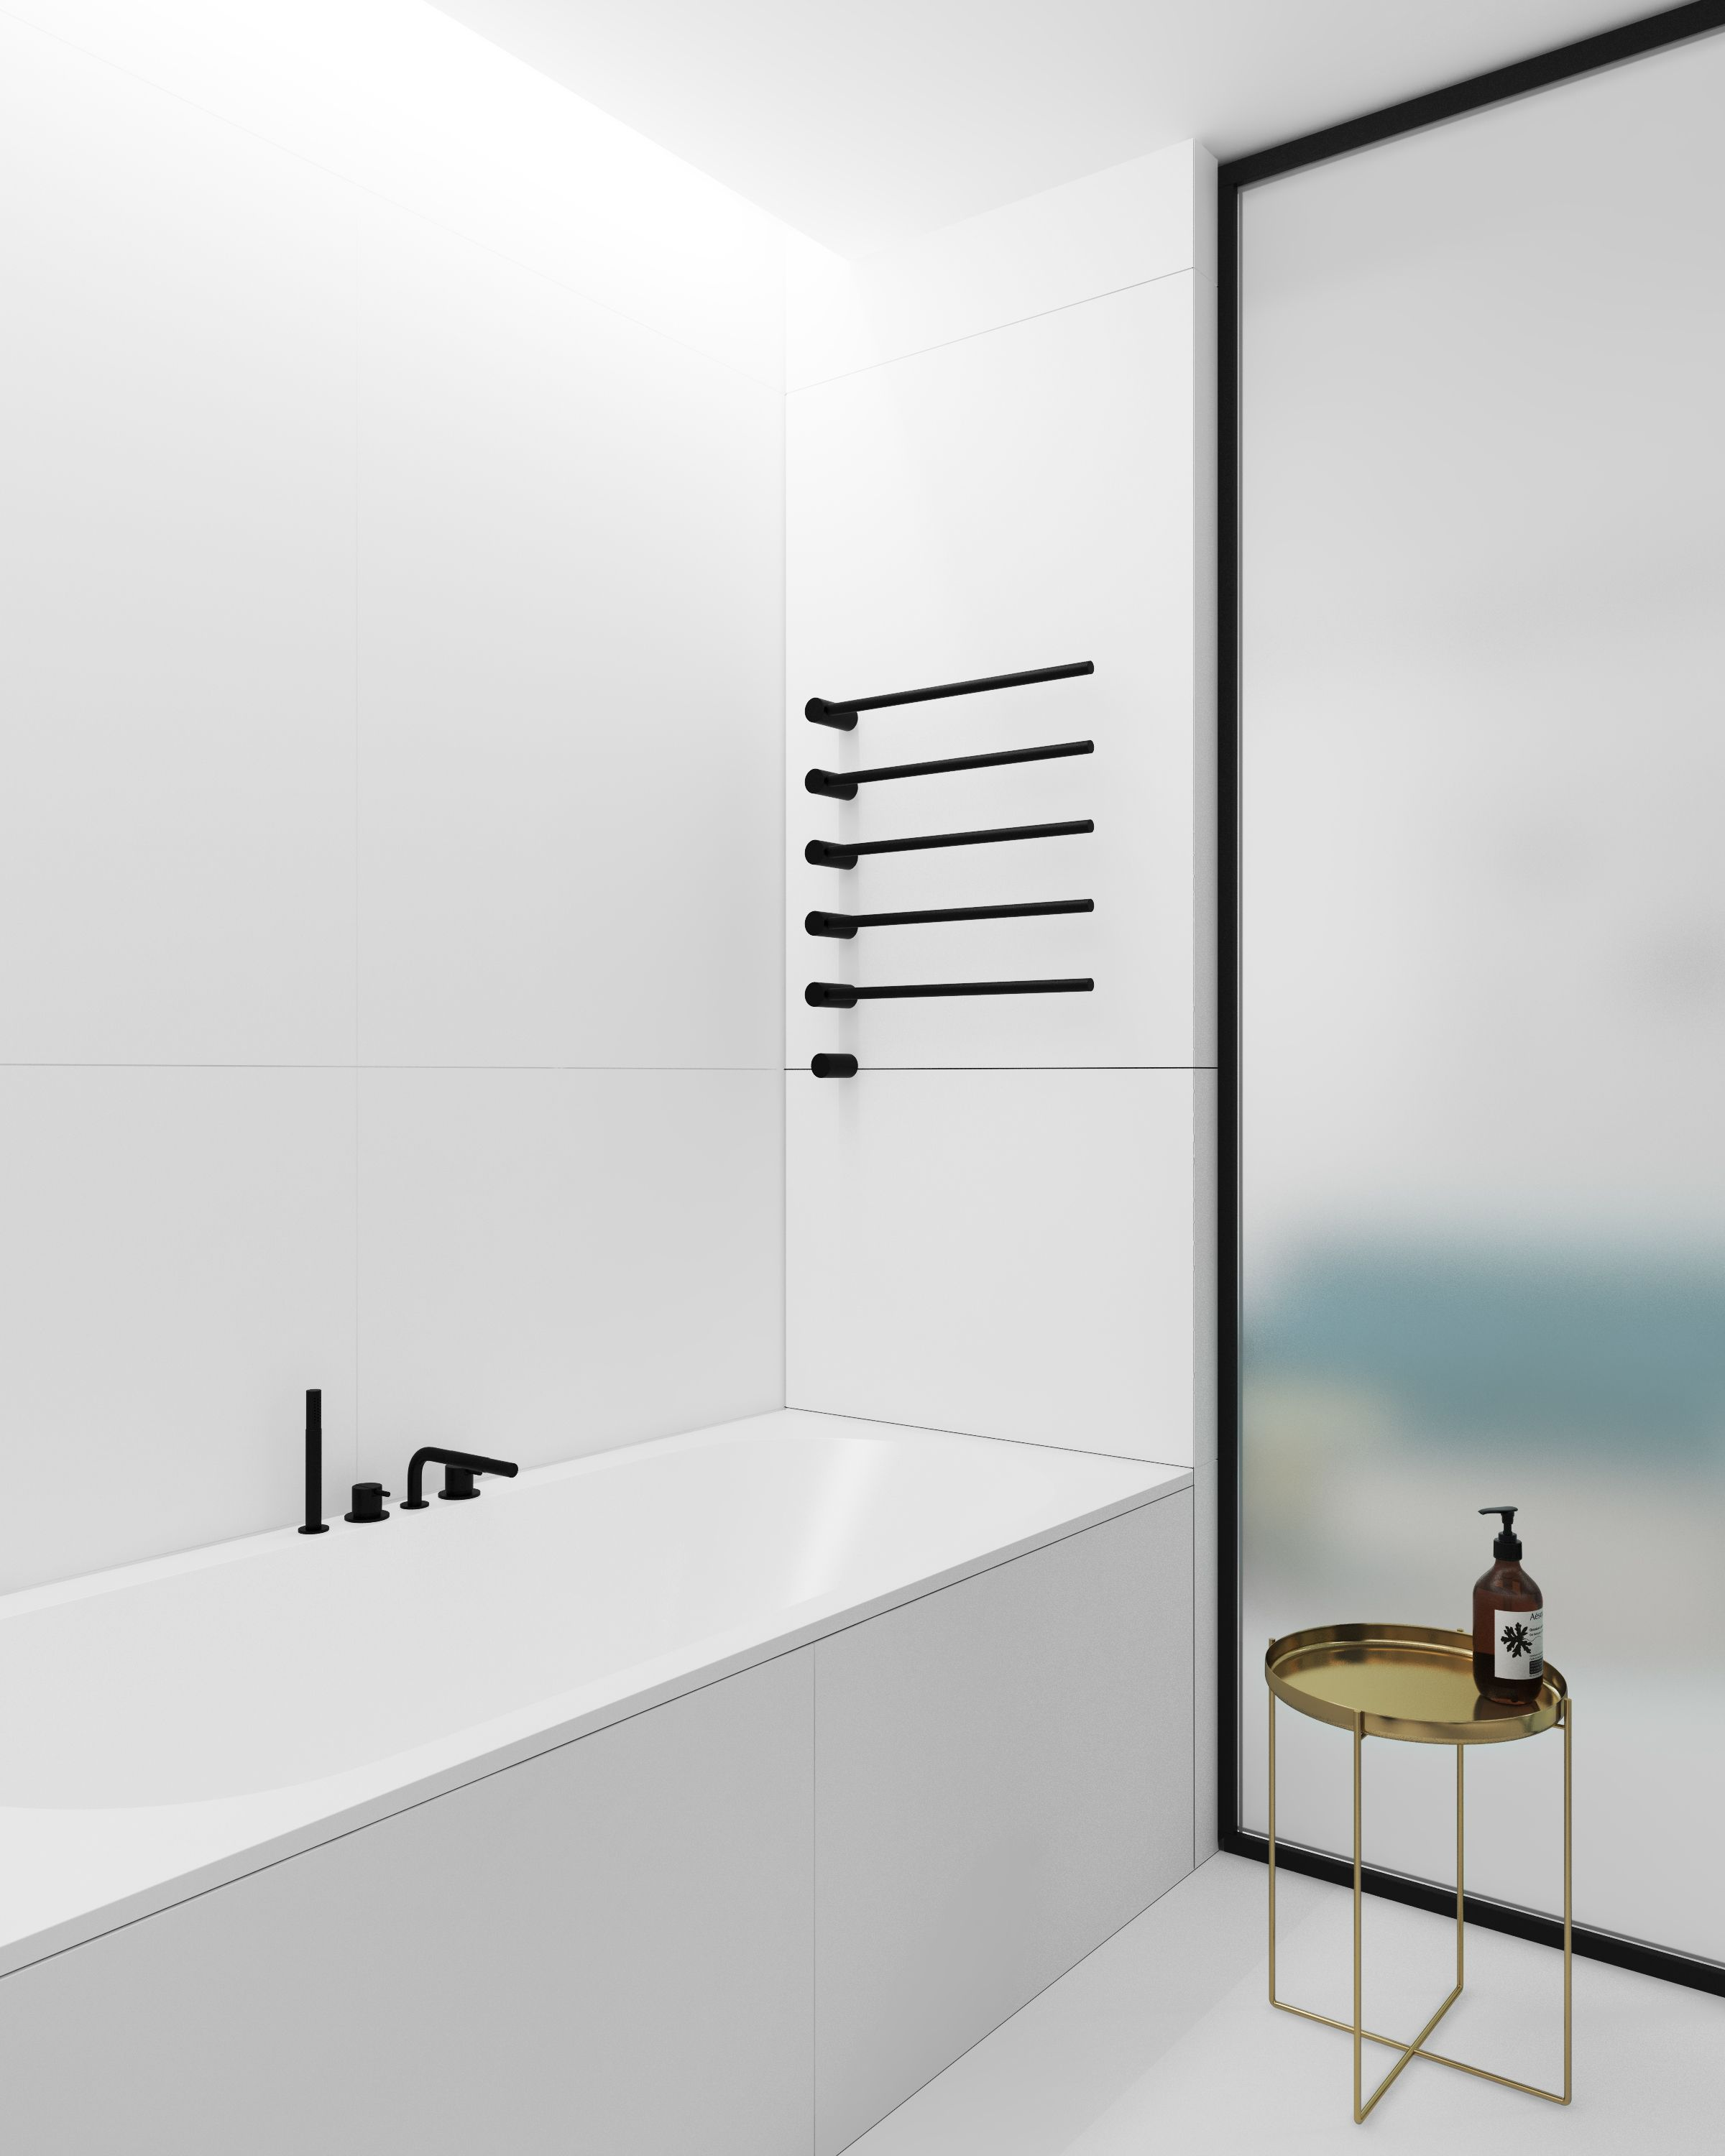 mproject | apt 1 bathroom/tile | Pinterest | Bathroom tiling